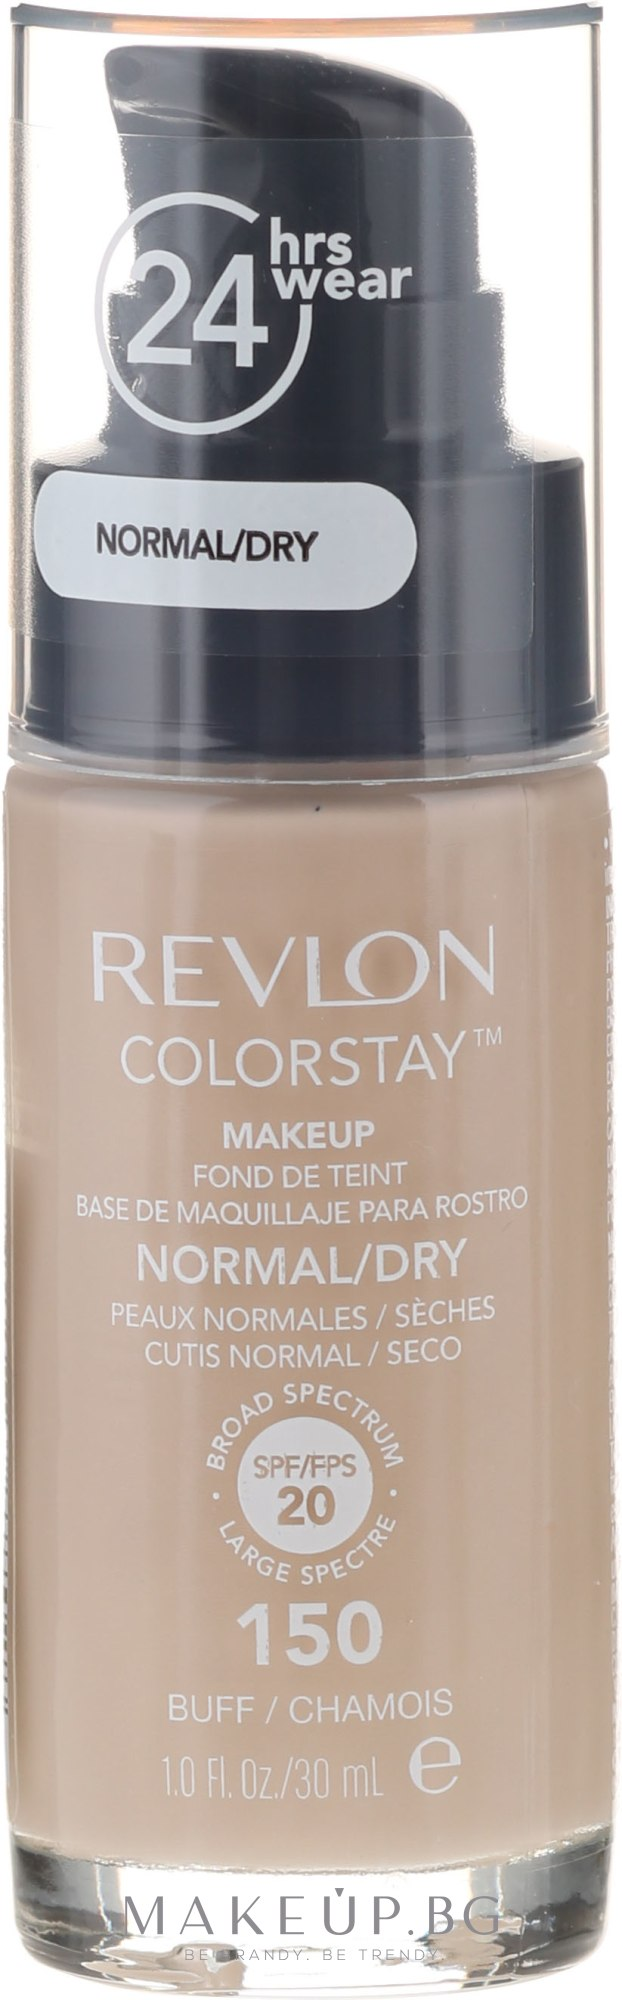 Фон дьо тен - Revlon ColorStay Foundation For Normal/Dry Skin SPF20 — снимка 150 - Buff